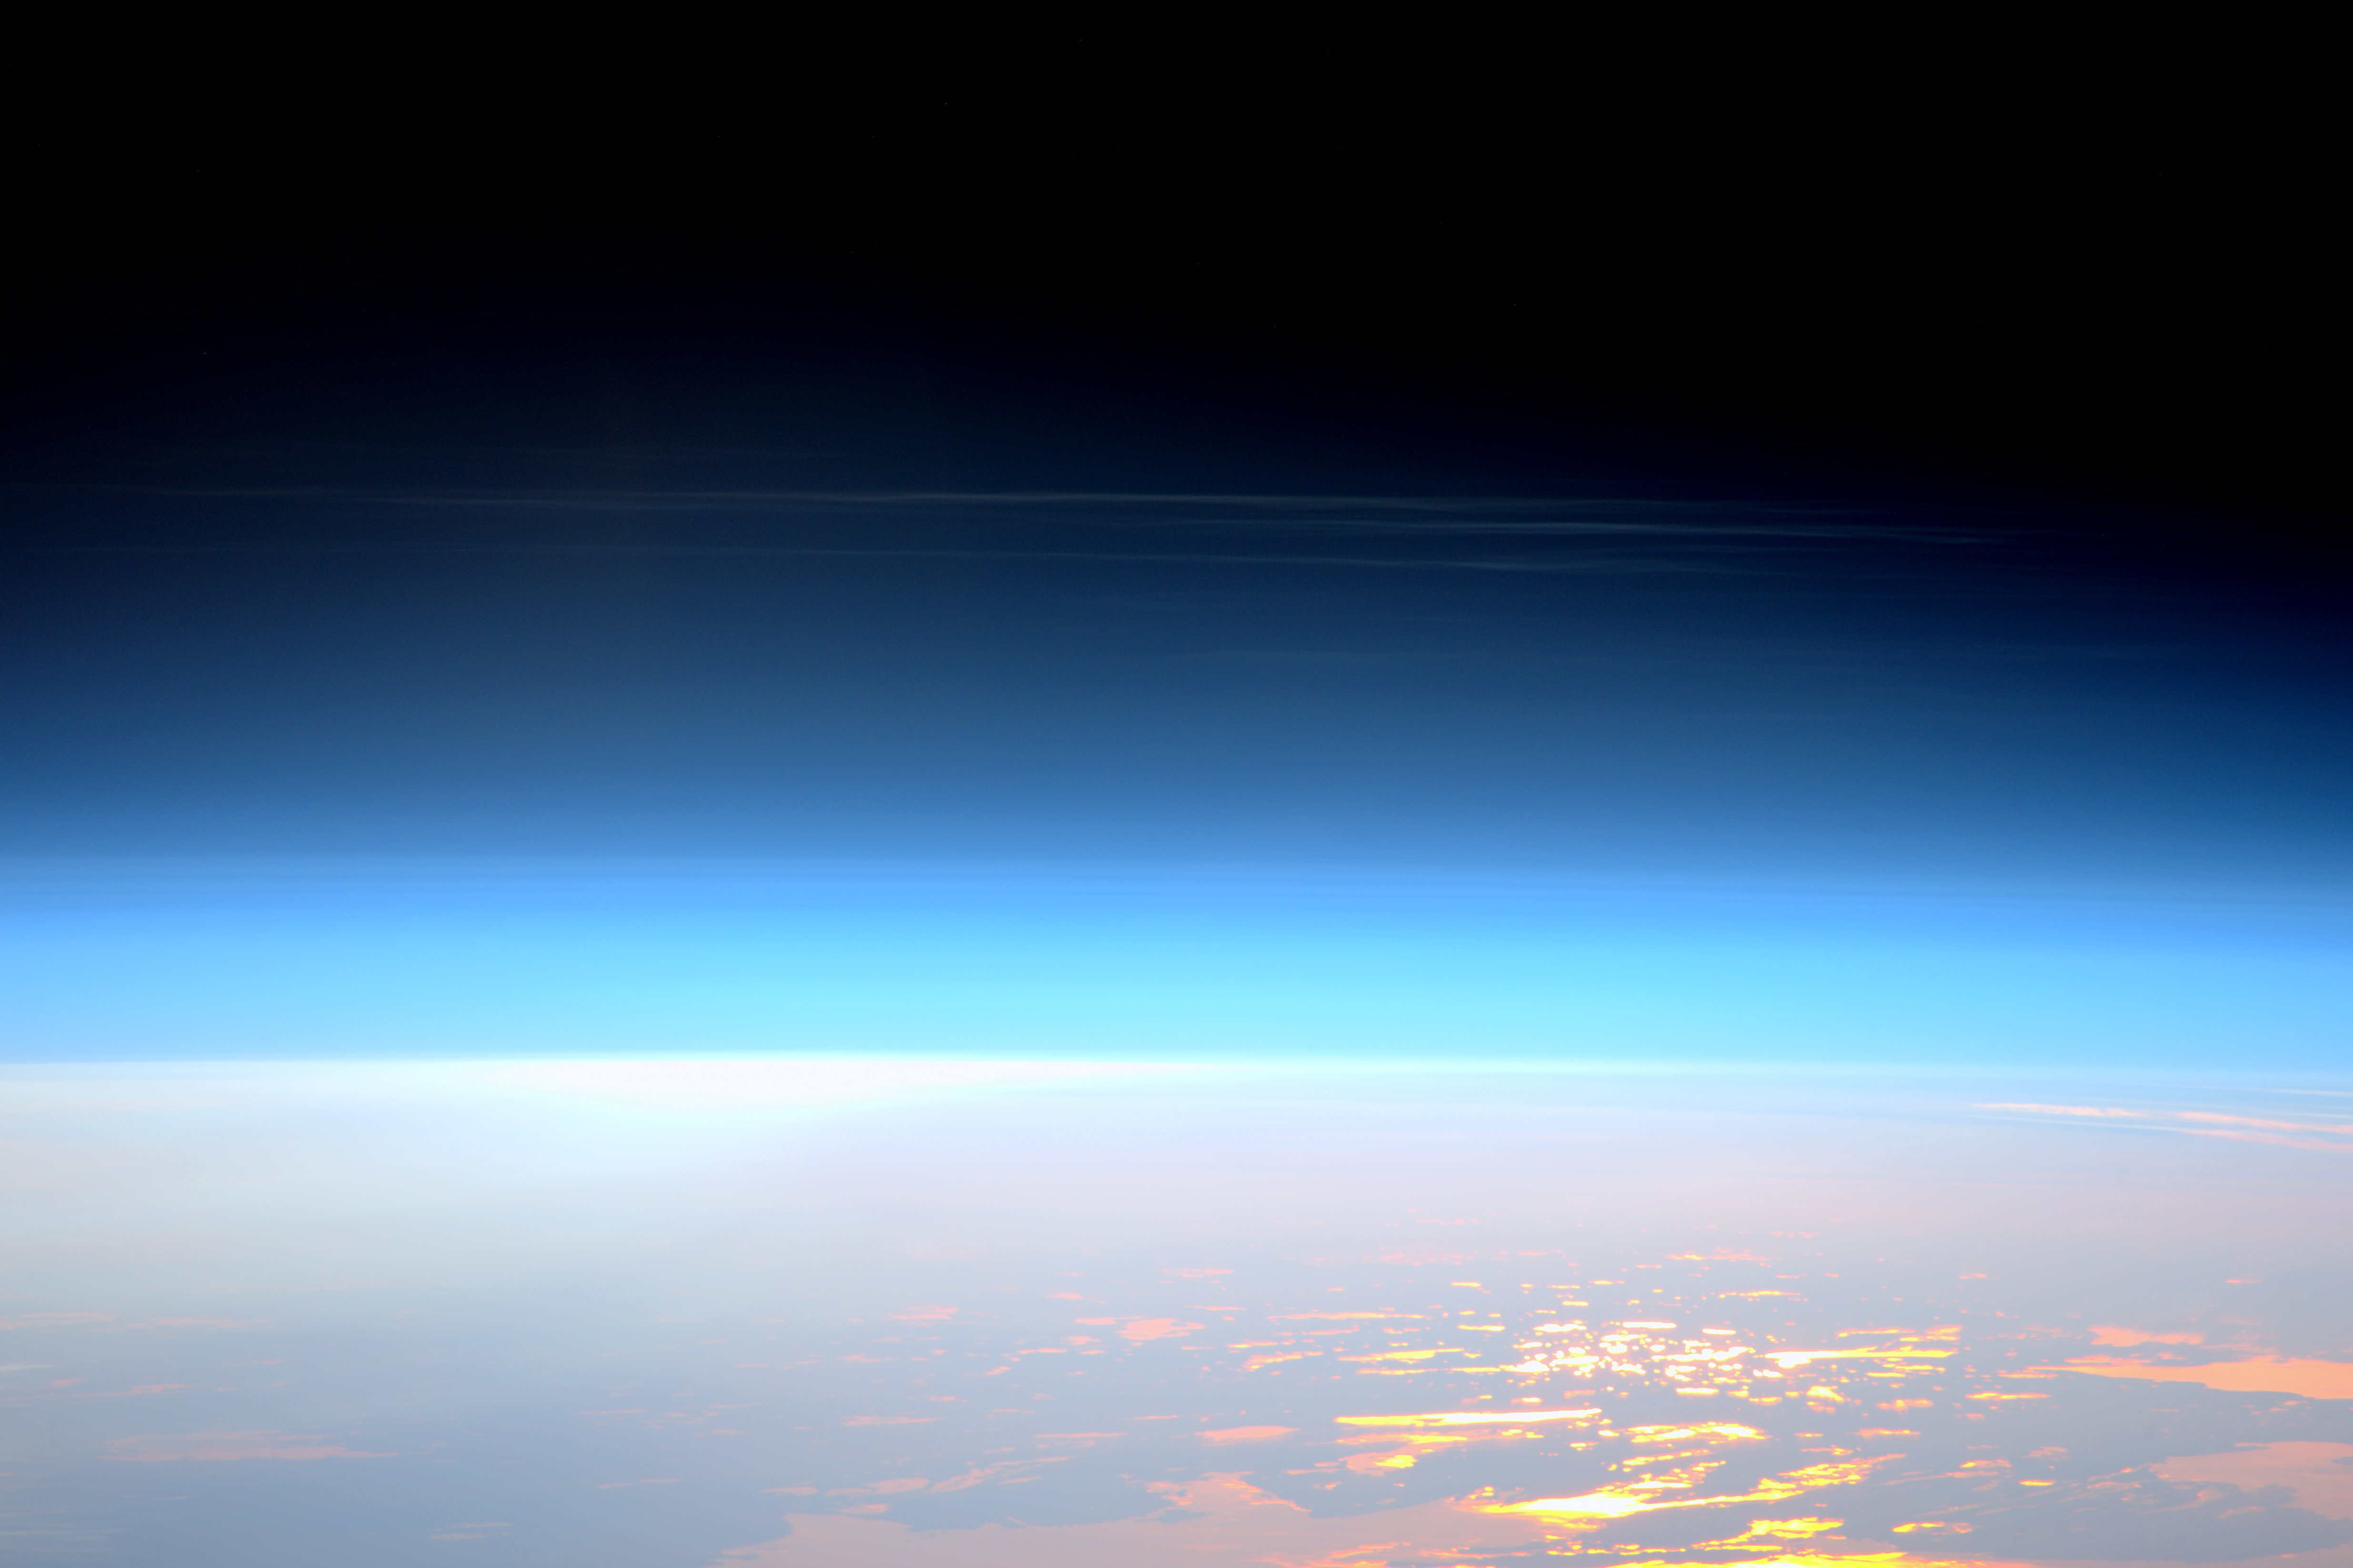 Space Station View of Noctilucent Clouds | Pacosite's Blog